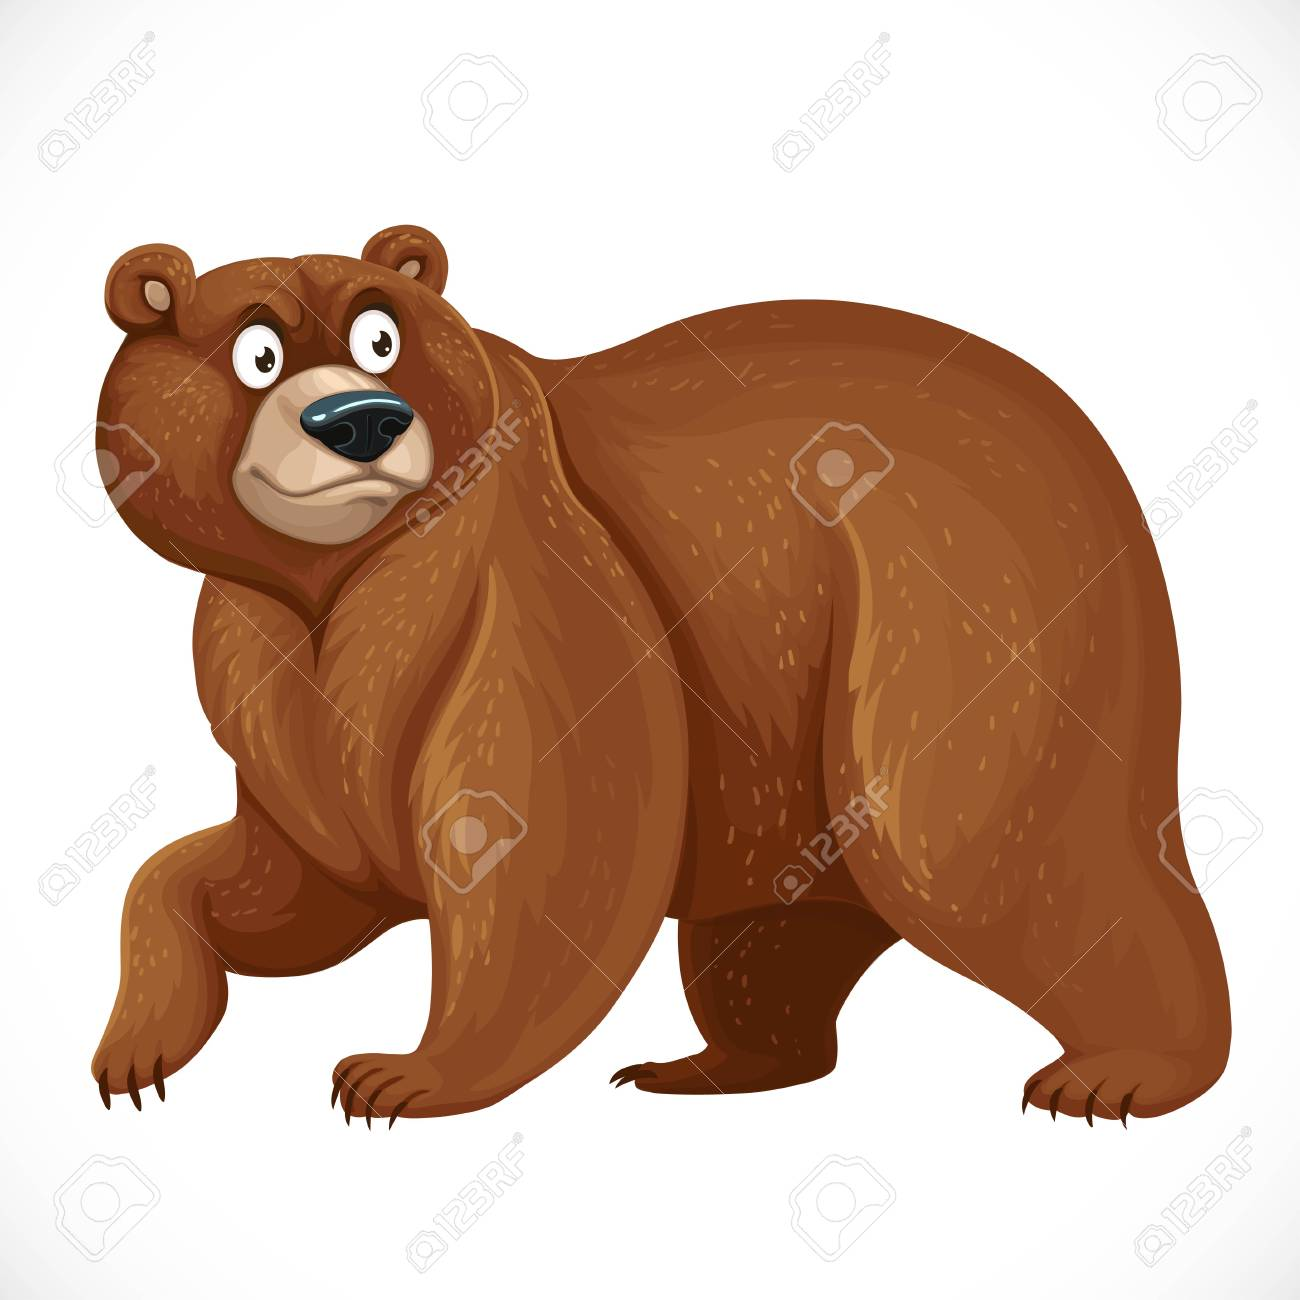 Cartoon bear stands on four legs isolated on white - 116941703